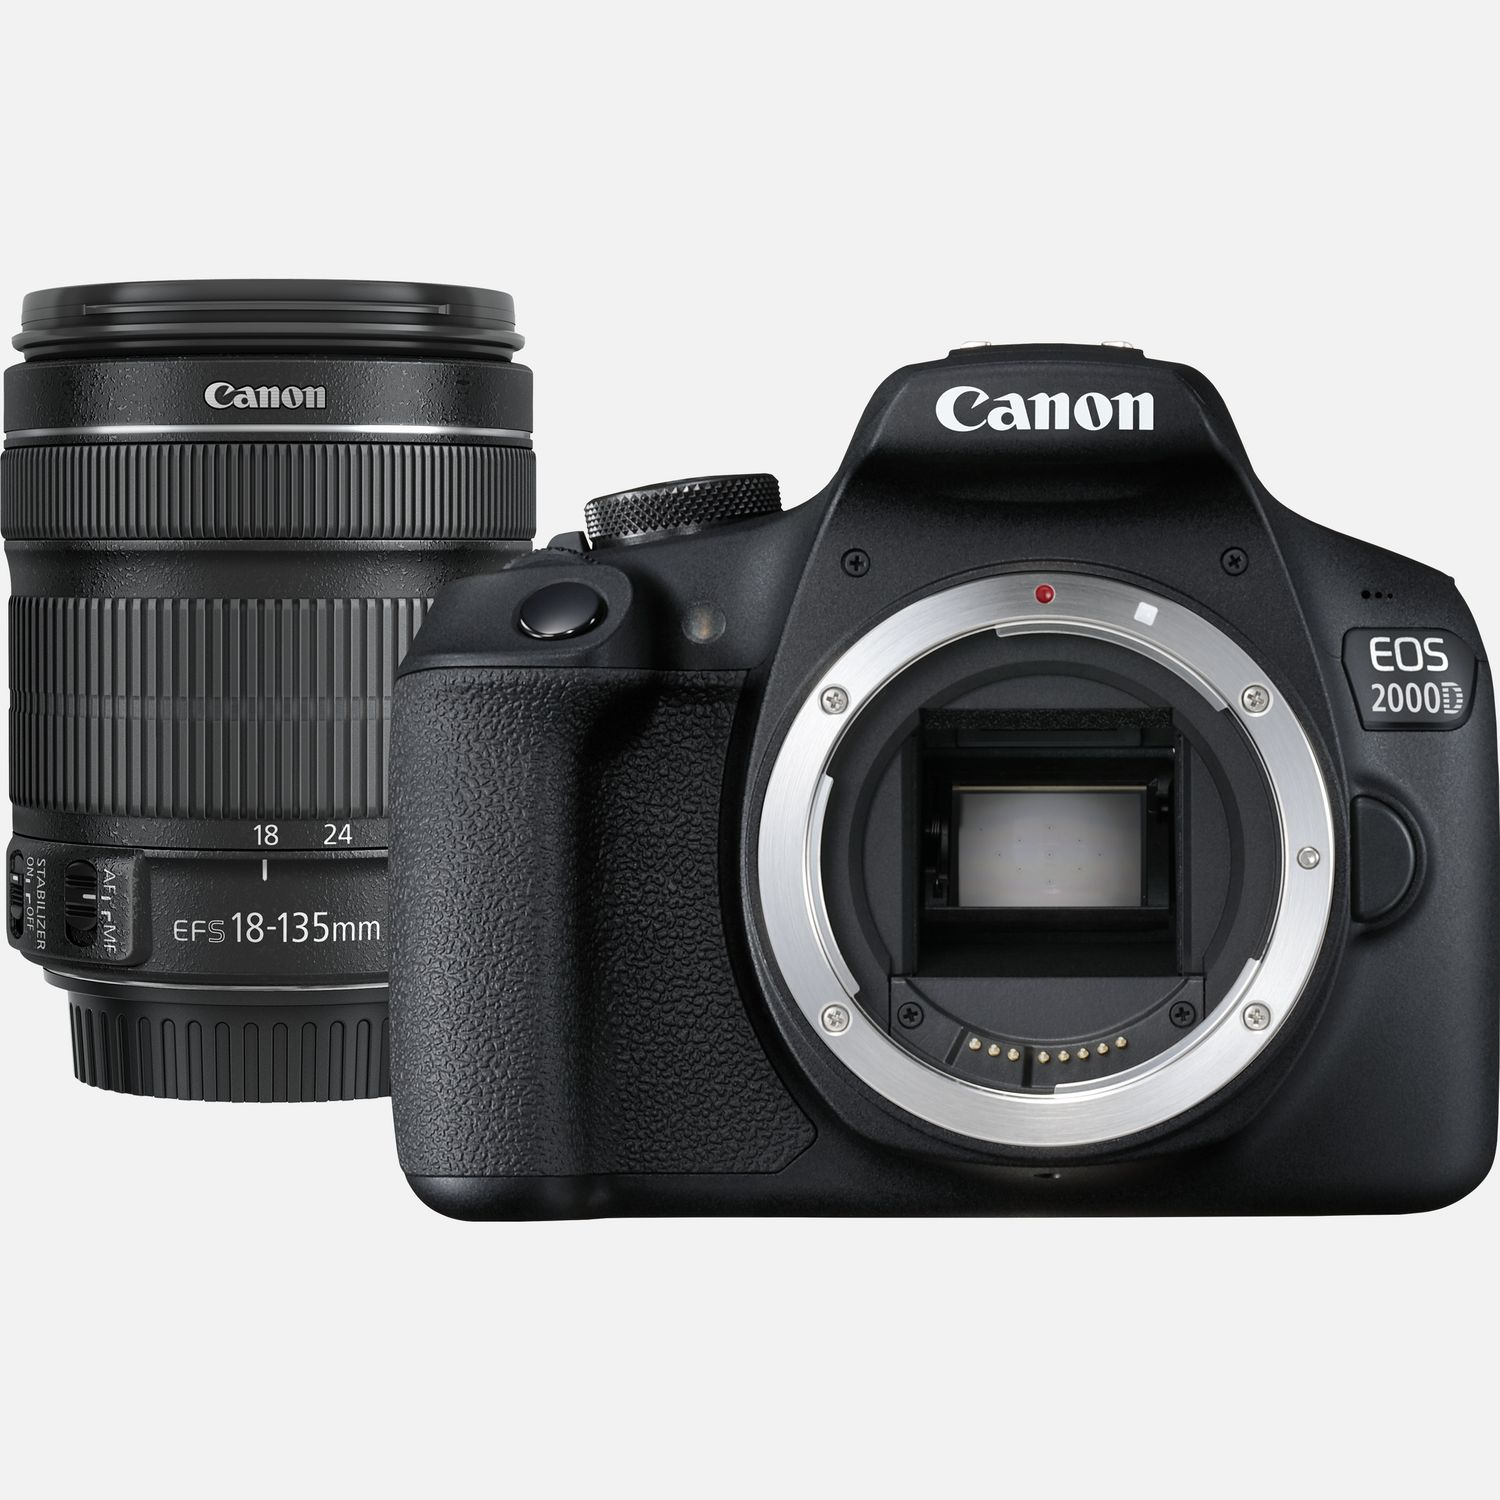 Image of Canon EOS 2000D and EF-S 18-135mm Lens